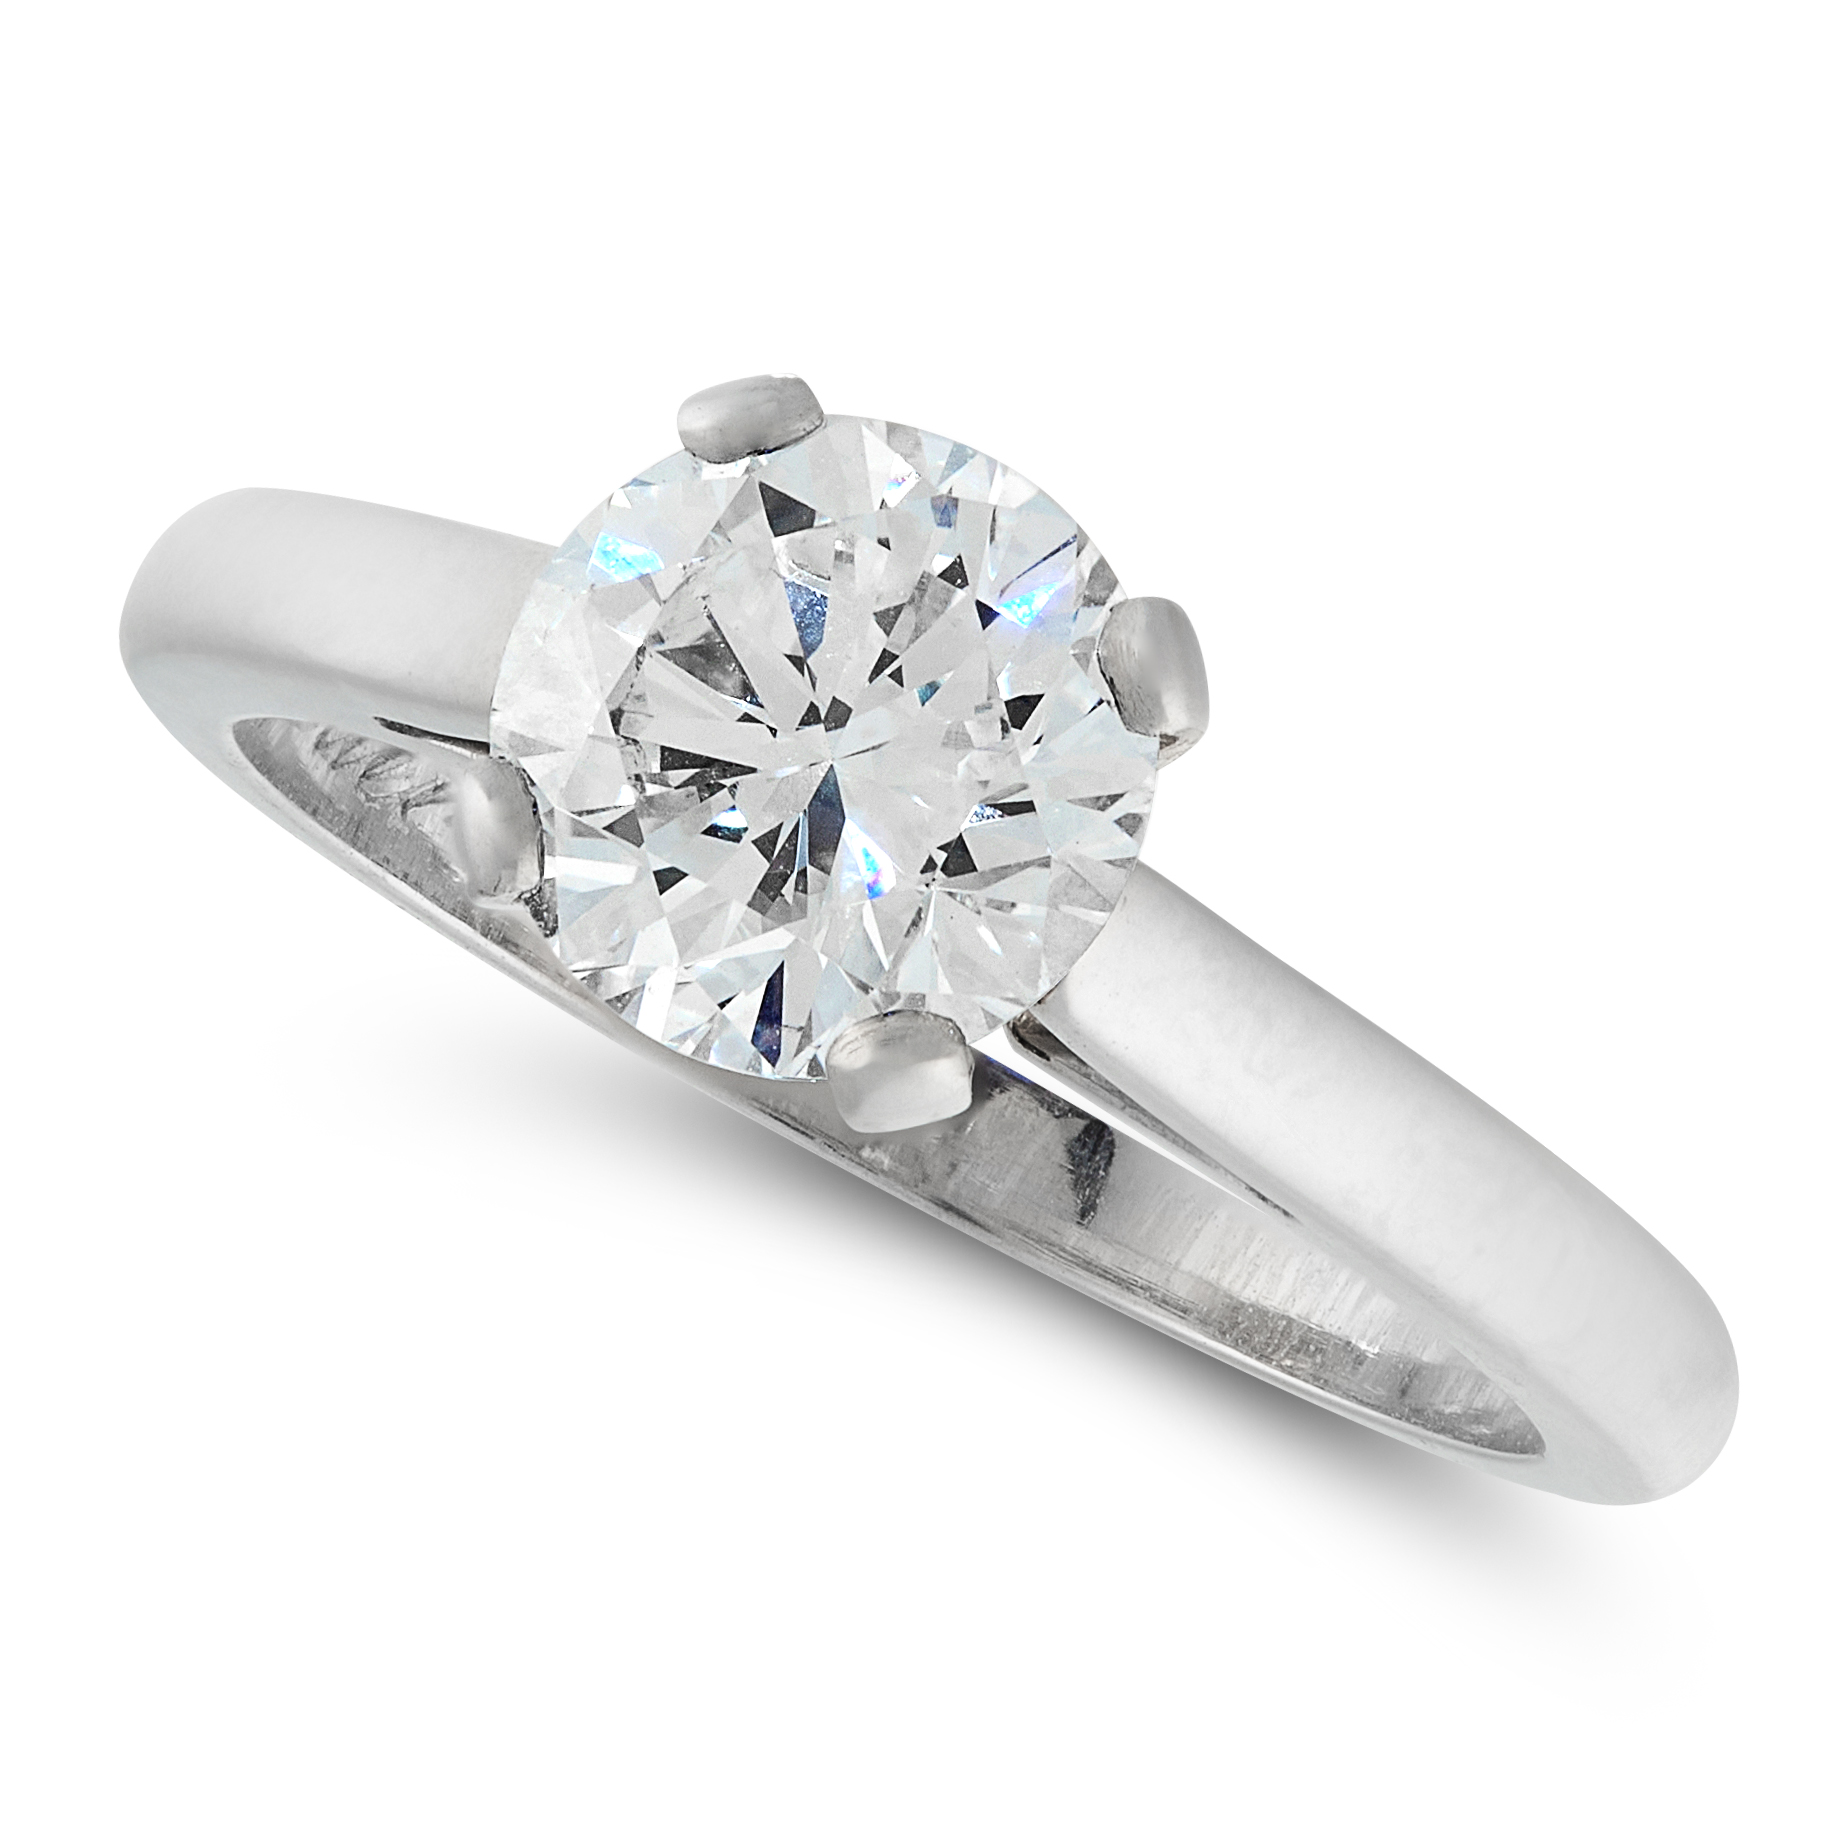 A SOLITAIRE DIAMOND RING, SIGNED CARTIER in platinum, set with a round cut diamond of 1.53 carats to